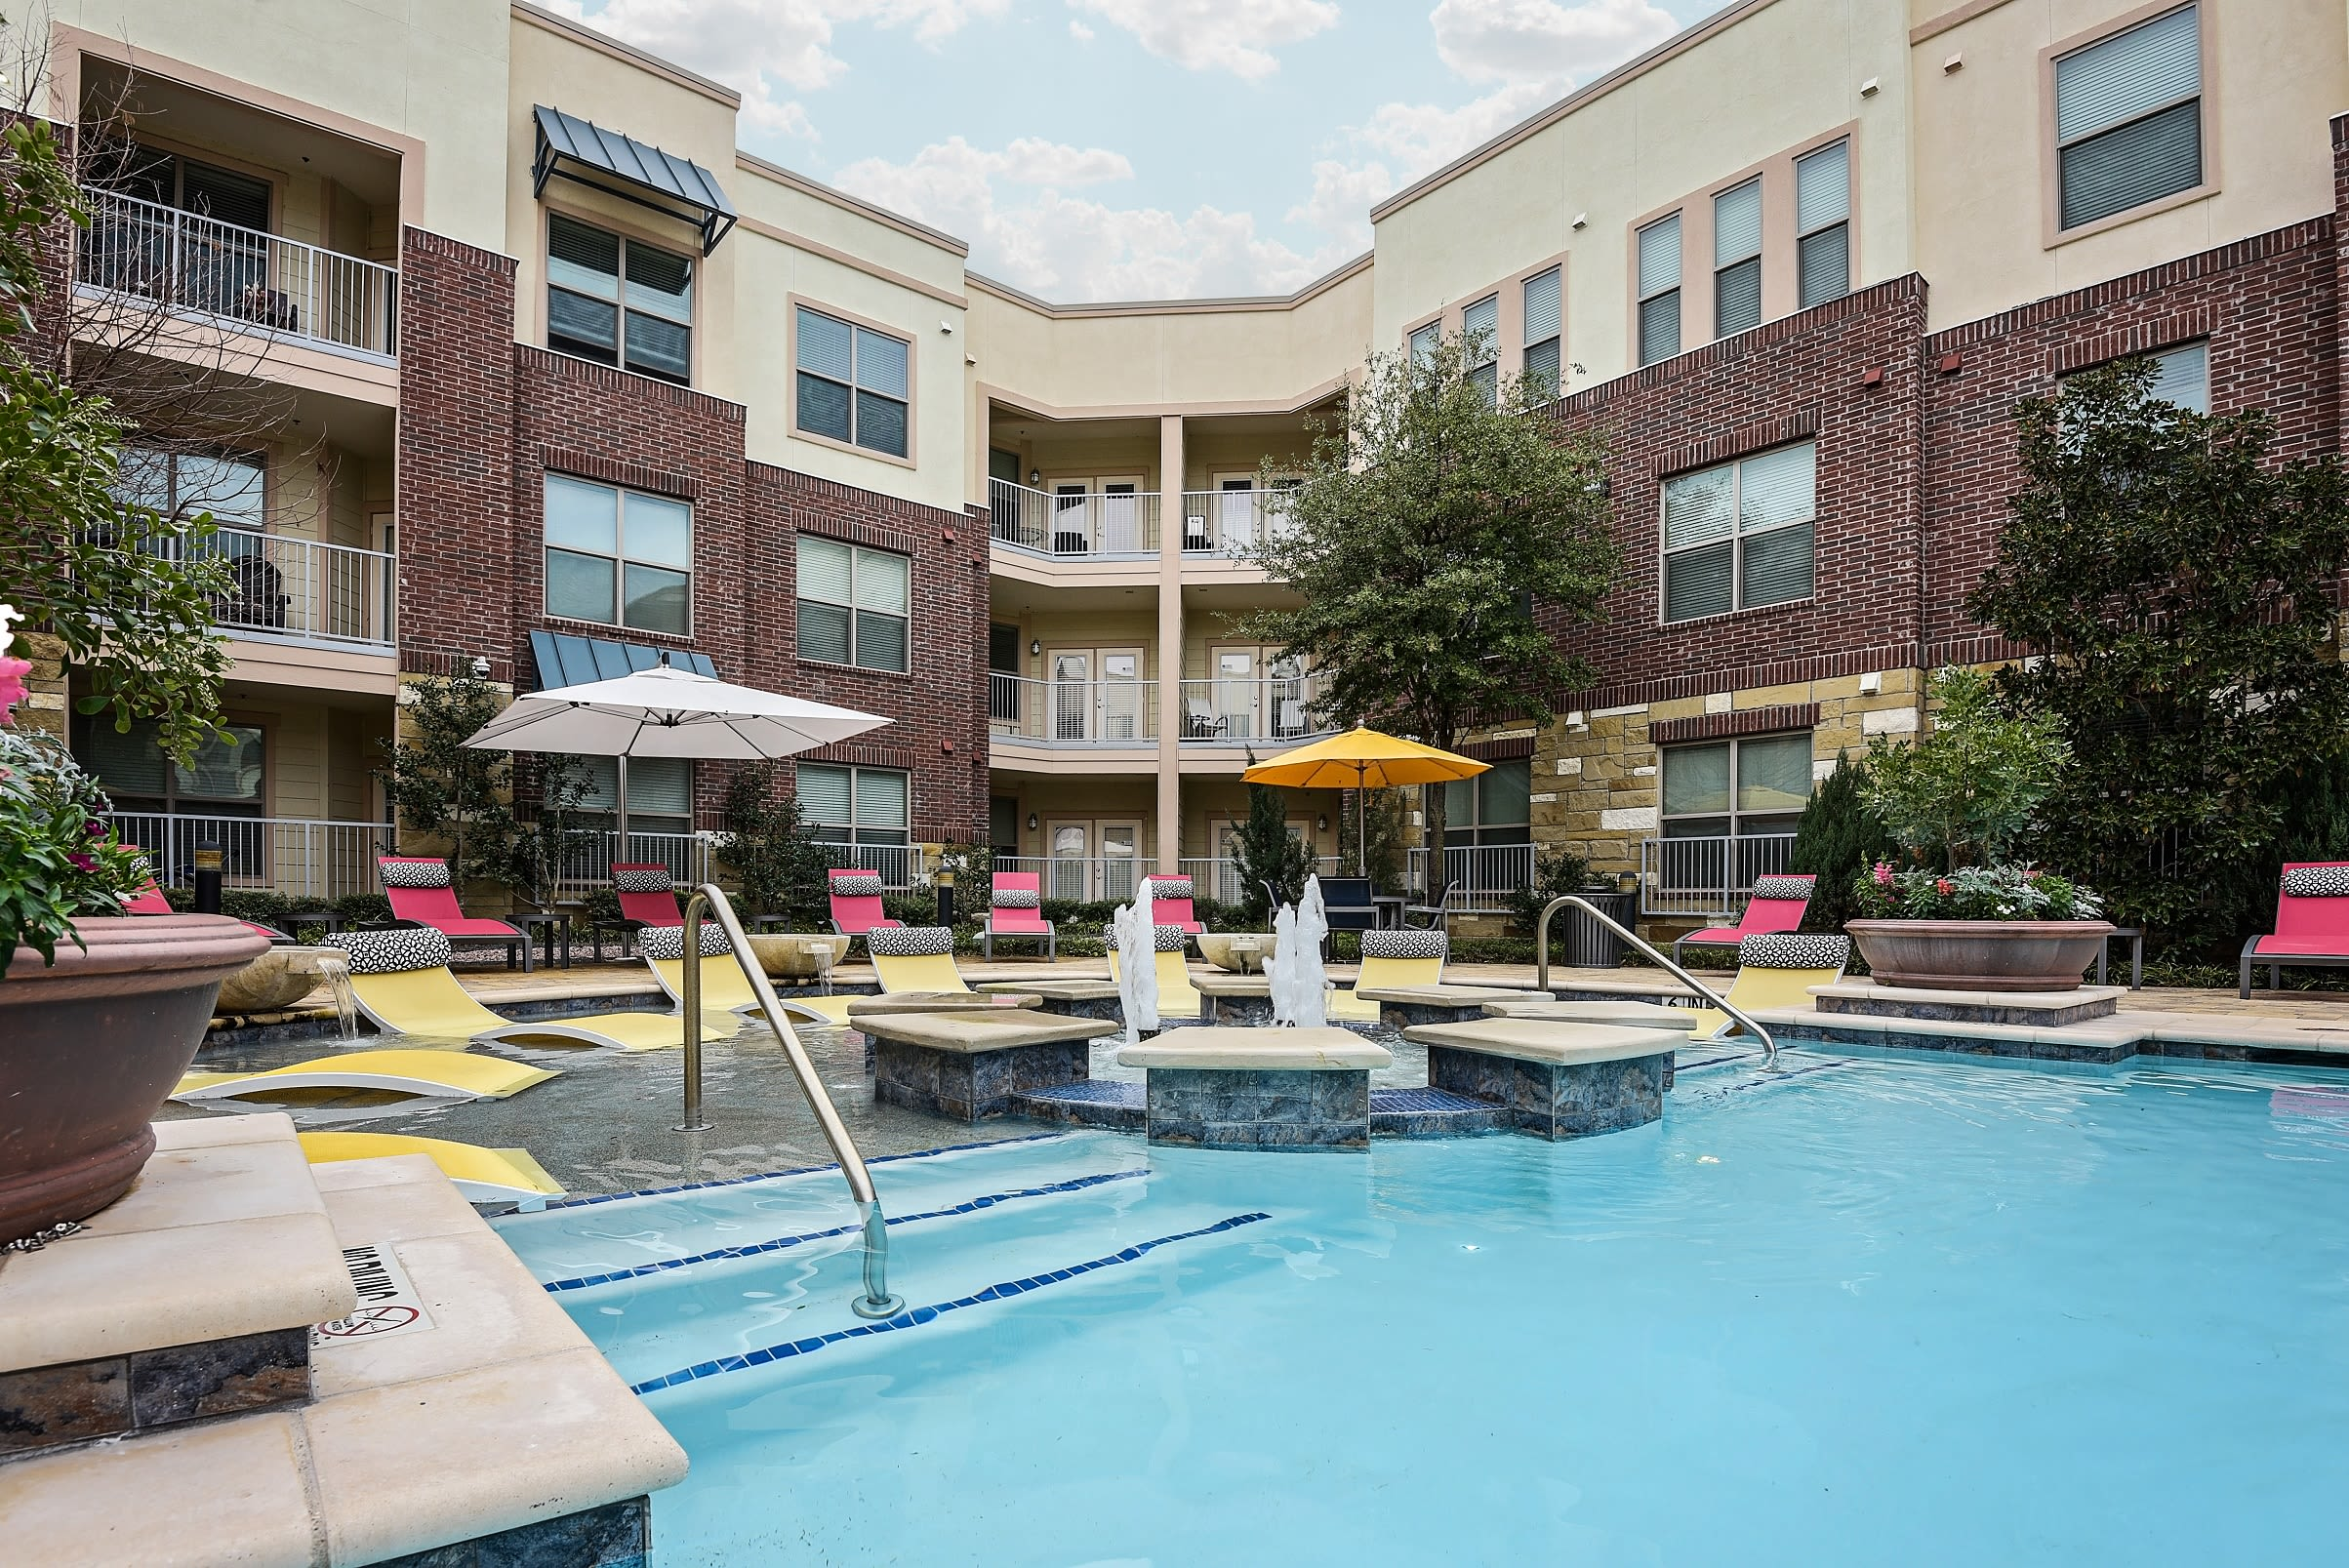 Beautiful resort-style pool at The Blvd in Irving, Texas